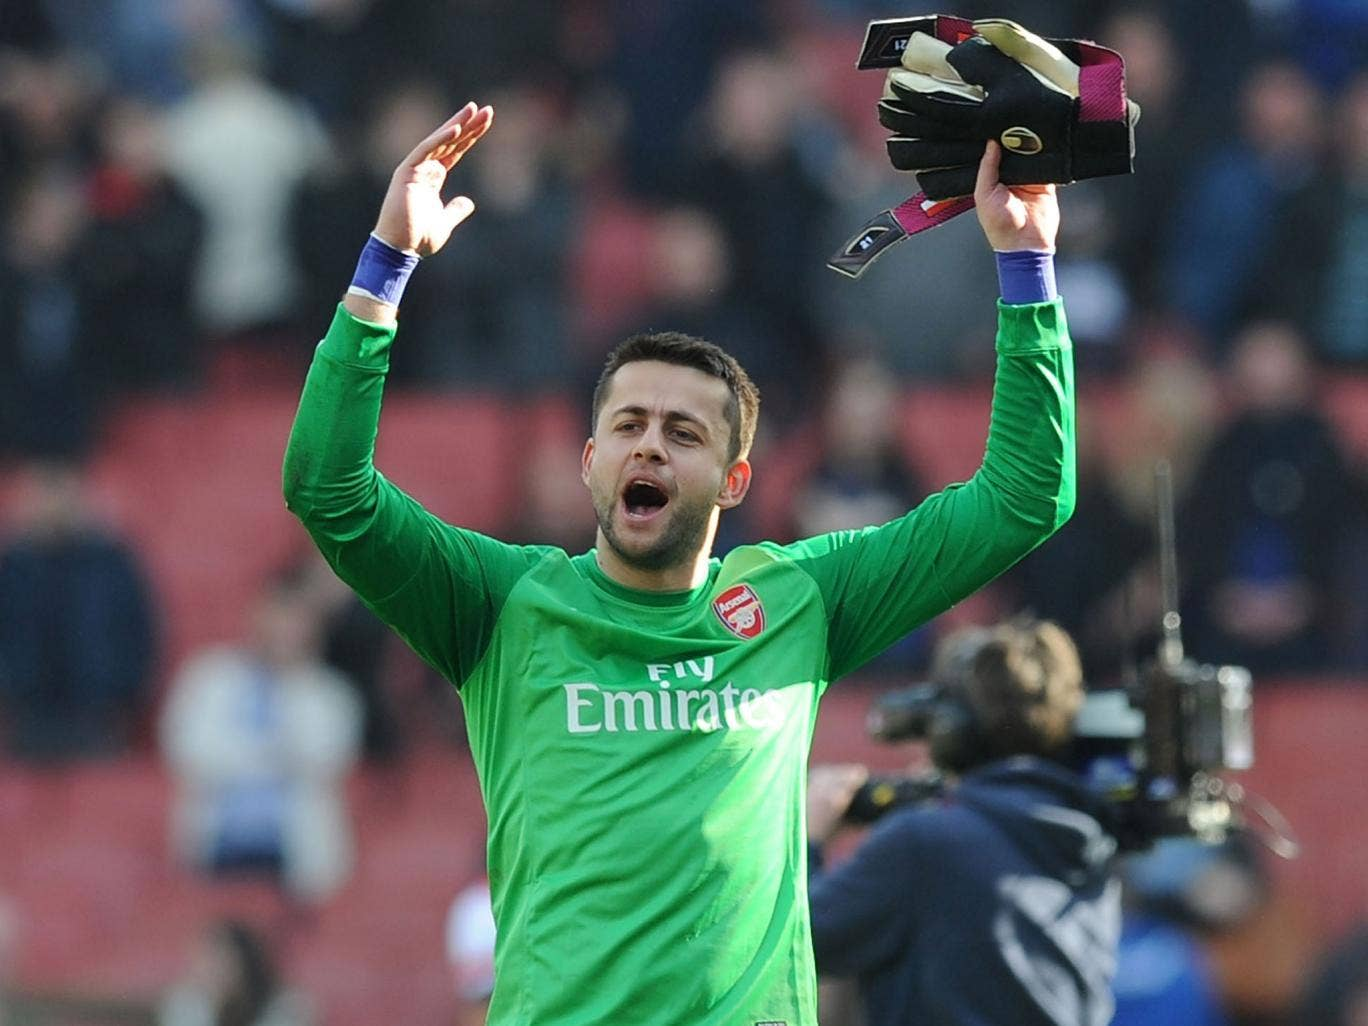 Arsenal goalkeeper Lukasz Fabianski celebrates after the FA Cup quarter-final match between Arsenal and Everton on Saturday